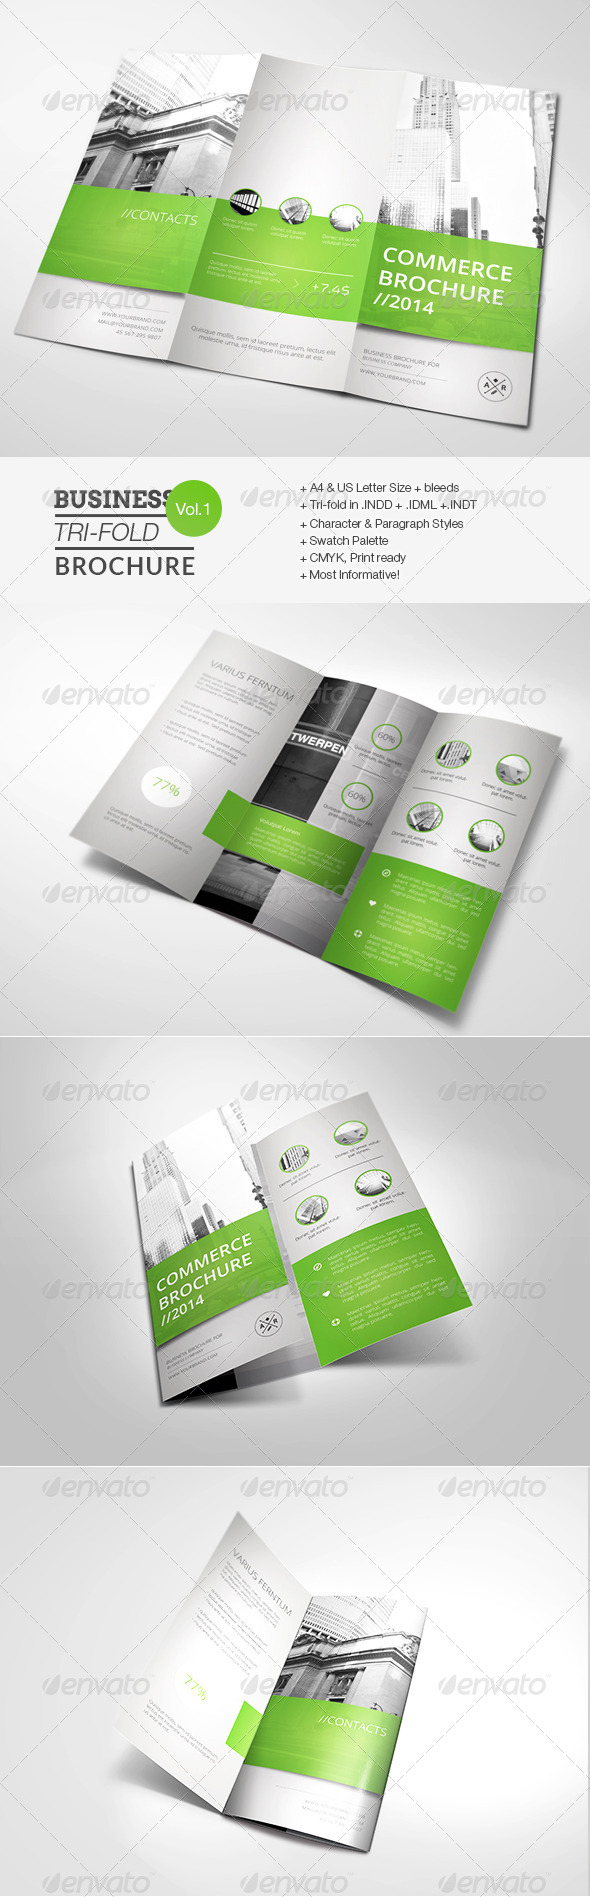 GraphicRiver Business Tri-fold Brochure 7749575